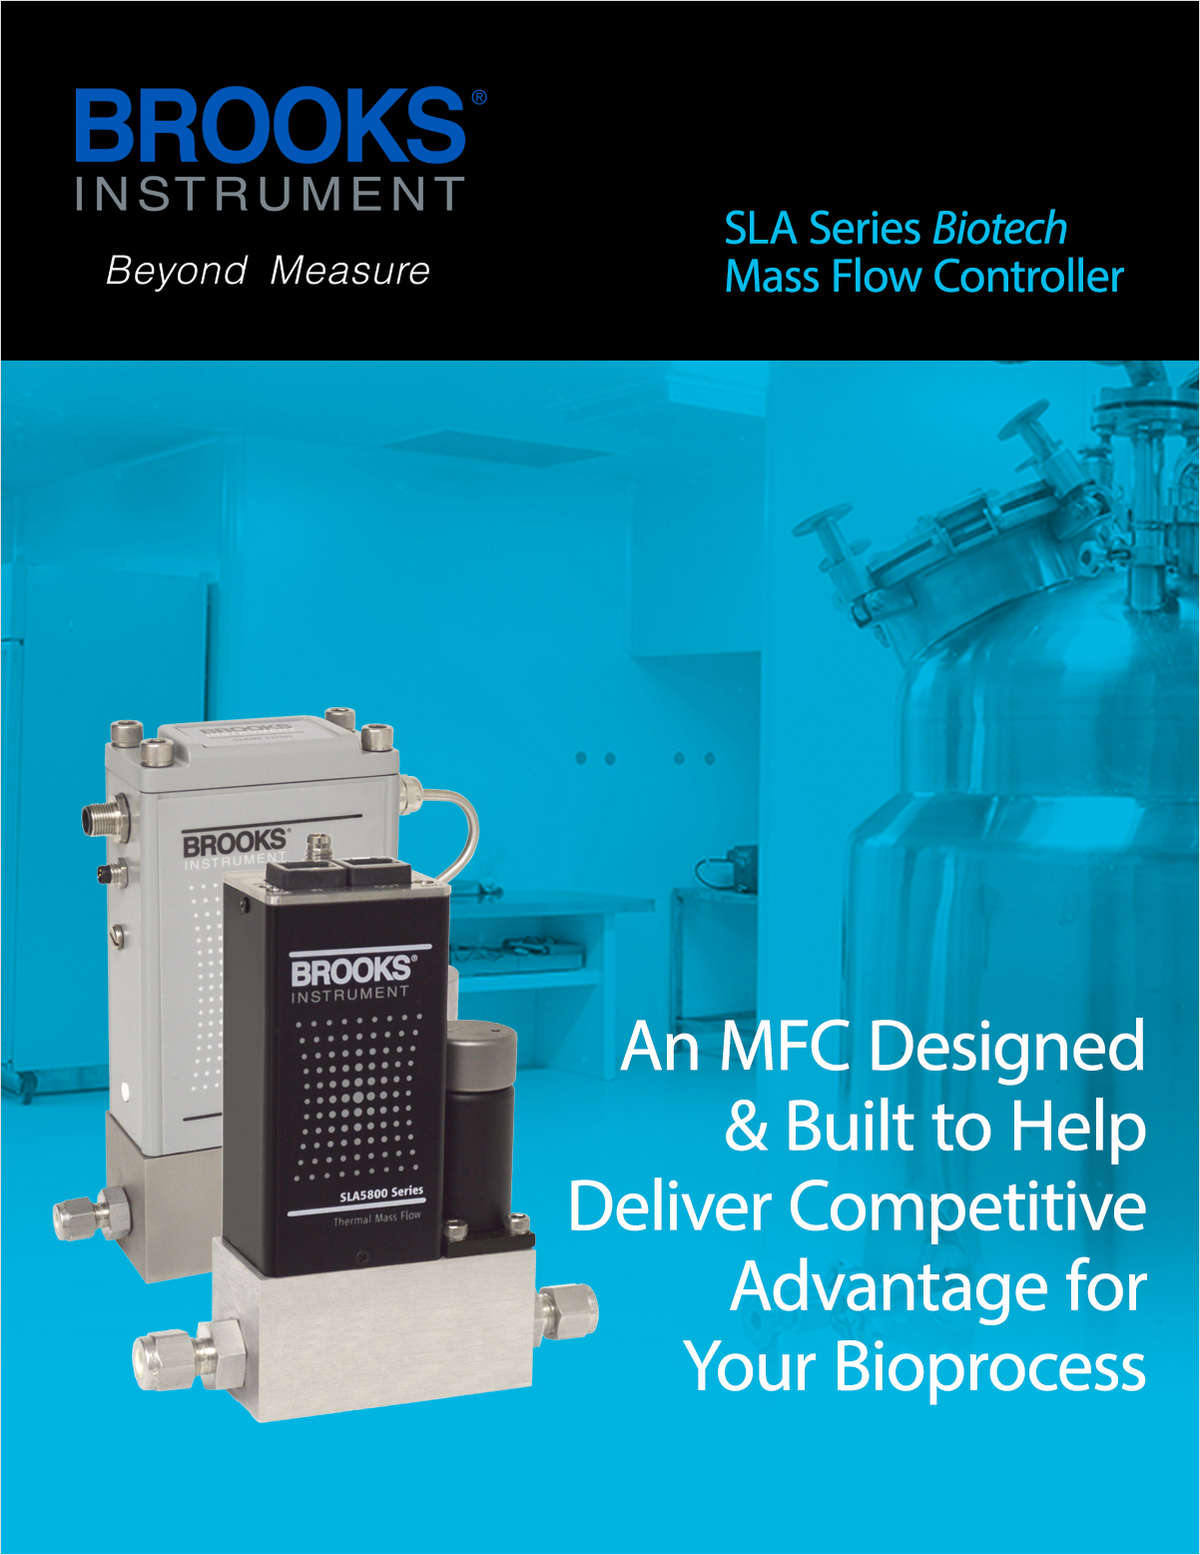 An MFC Designed & Built to Help Deliver Competitive Advantage for Your Bioprocess